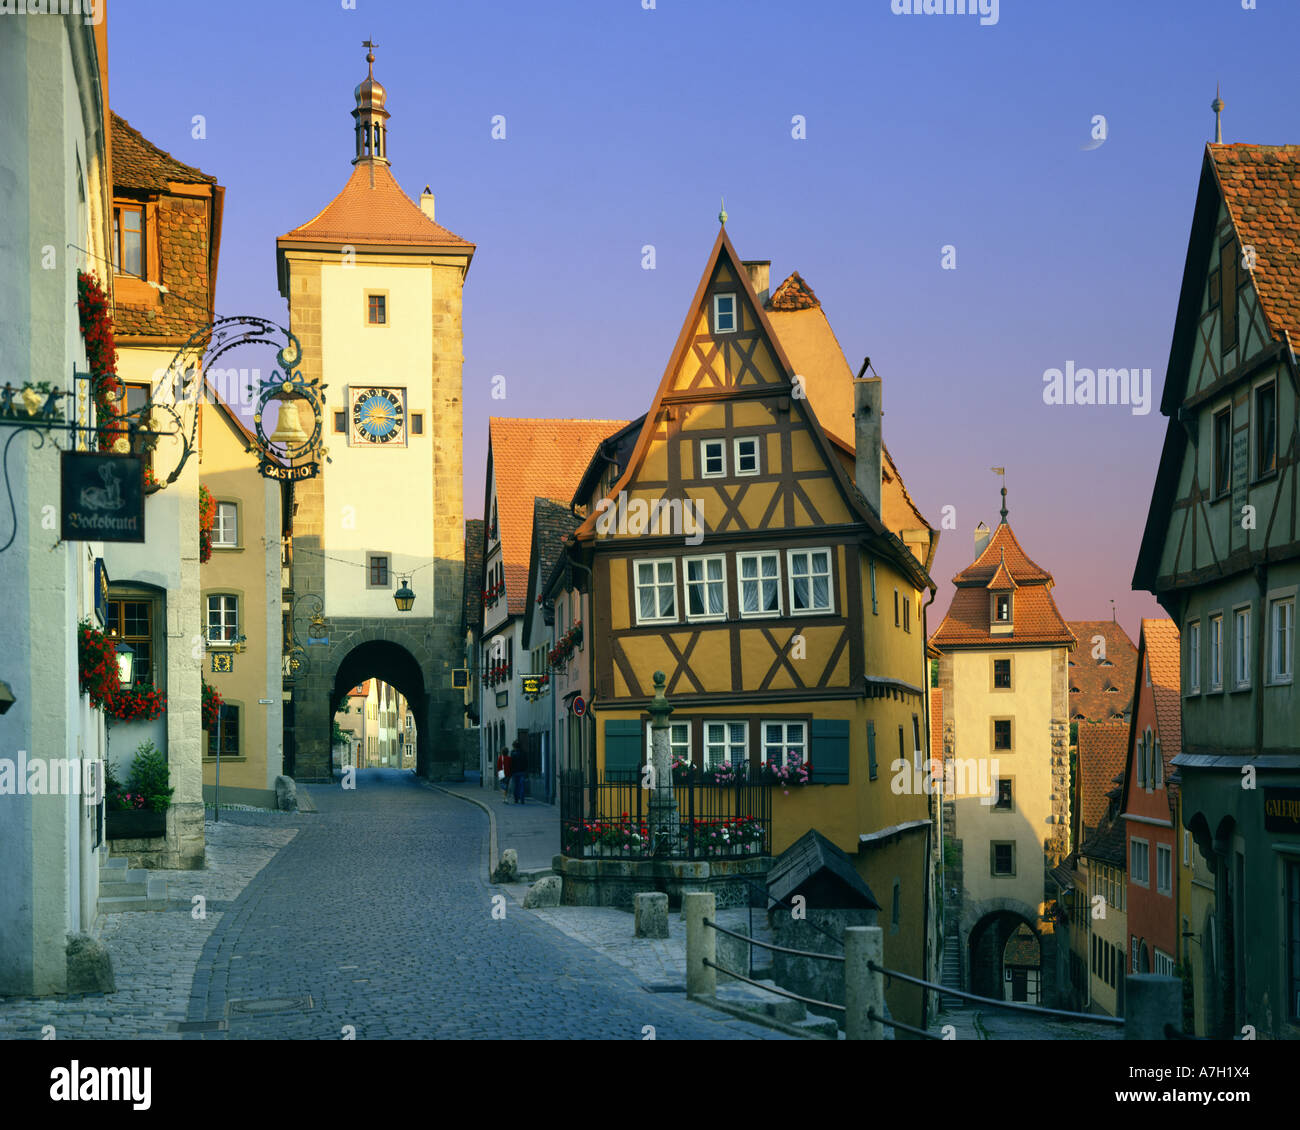 DE - BAVARIA: Plönlein at Rothenburg-ob-der-Tauber - Stock Image